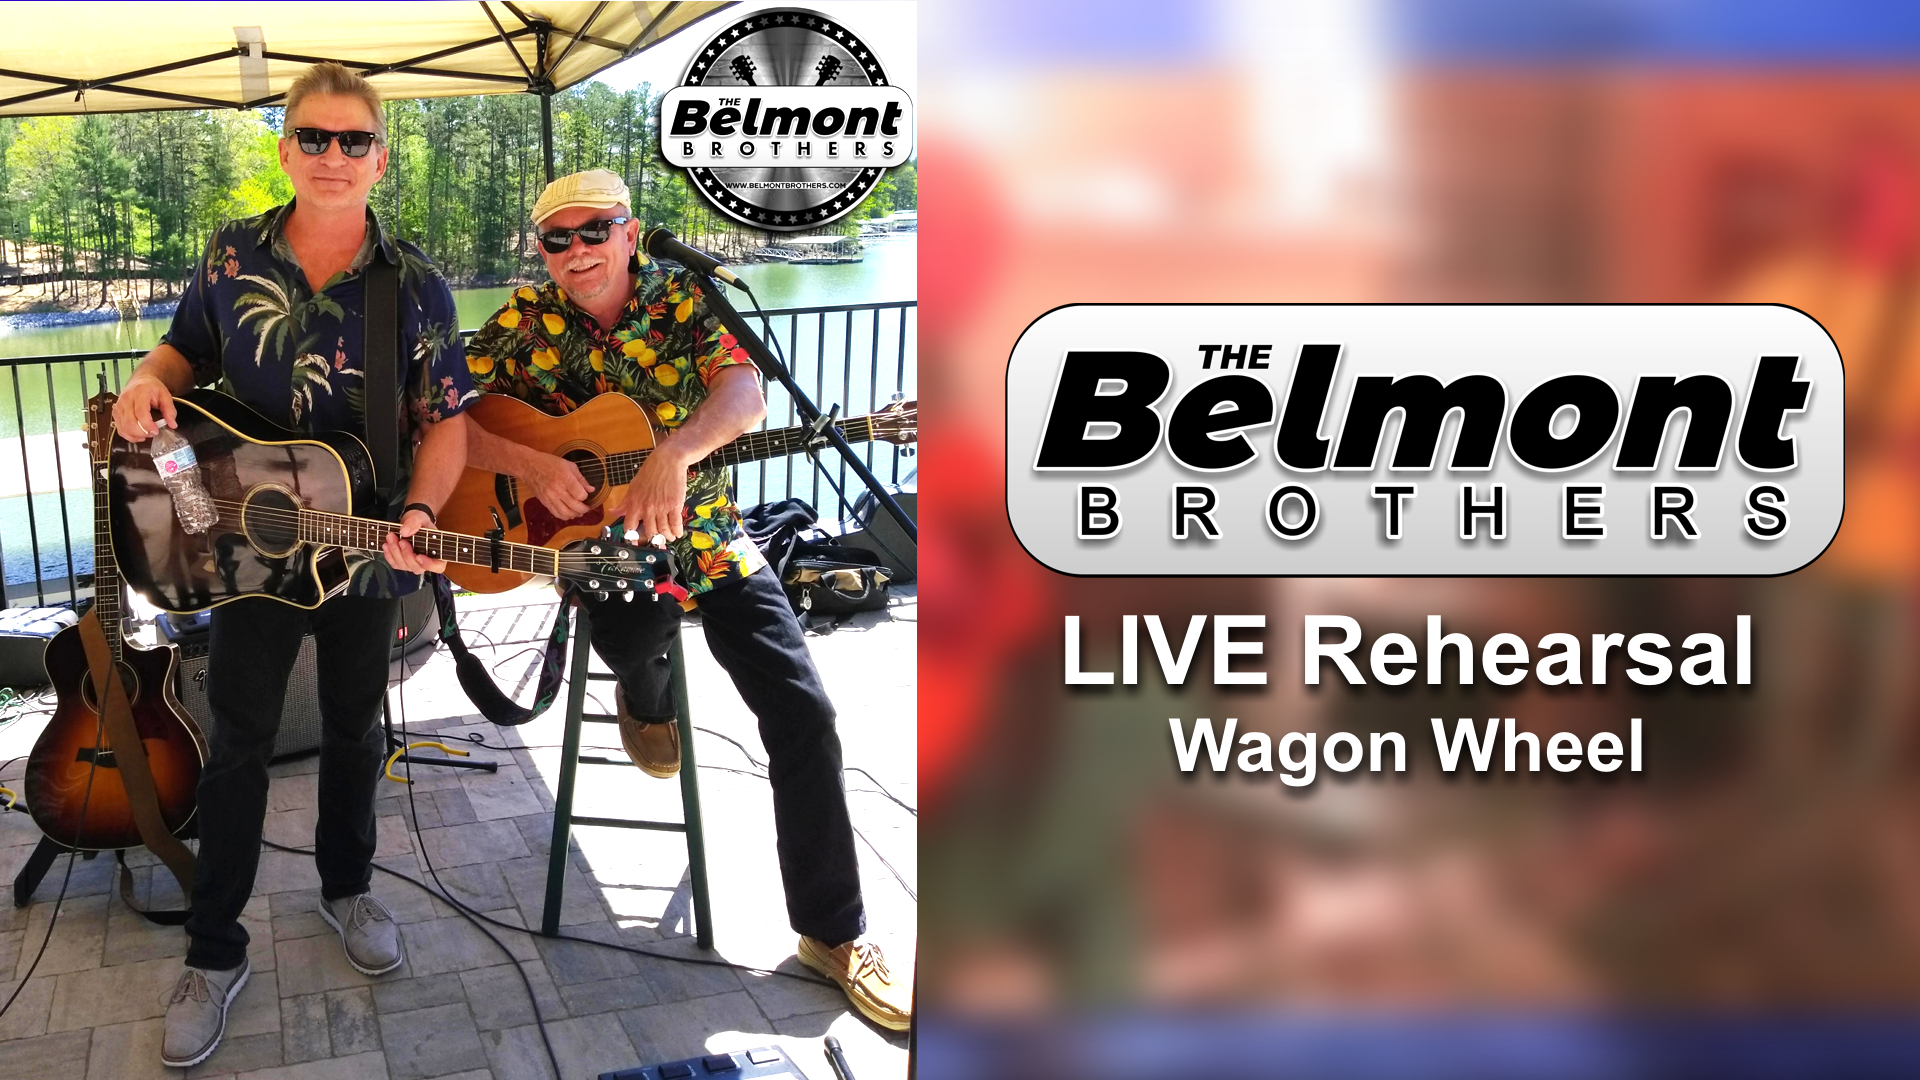 The Belmont Brothers Guitar Duo